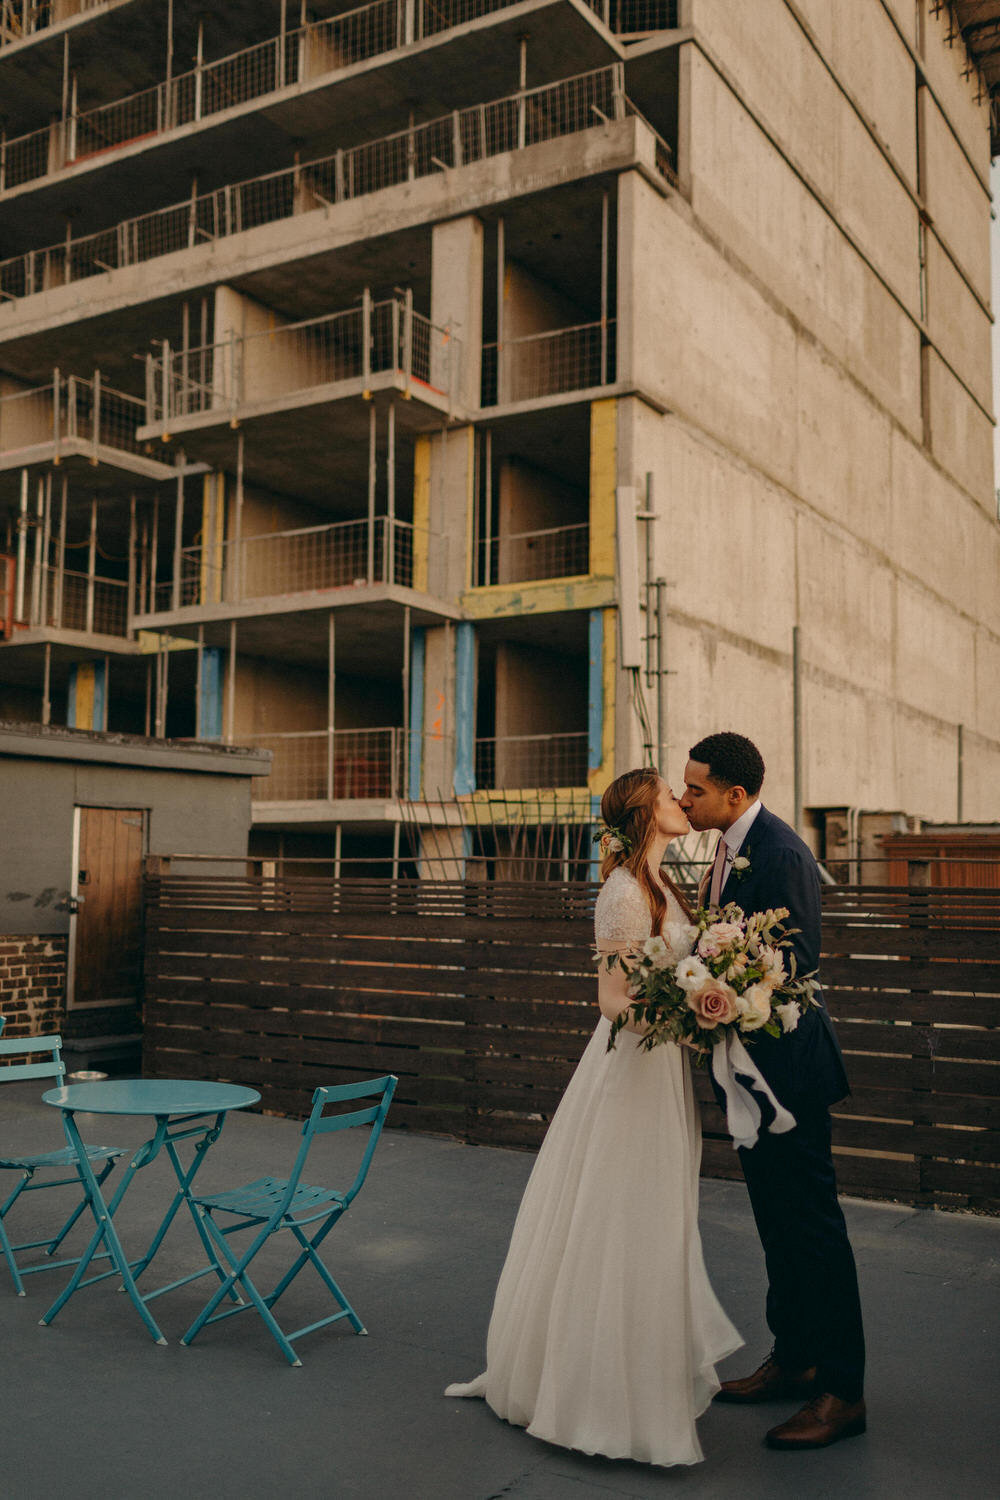 burroughes-building-wedding-toronto-christine-lim-photography-blush-and-bowties-066